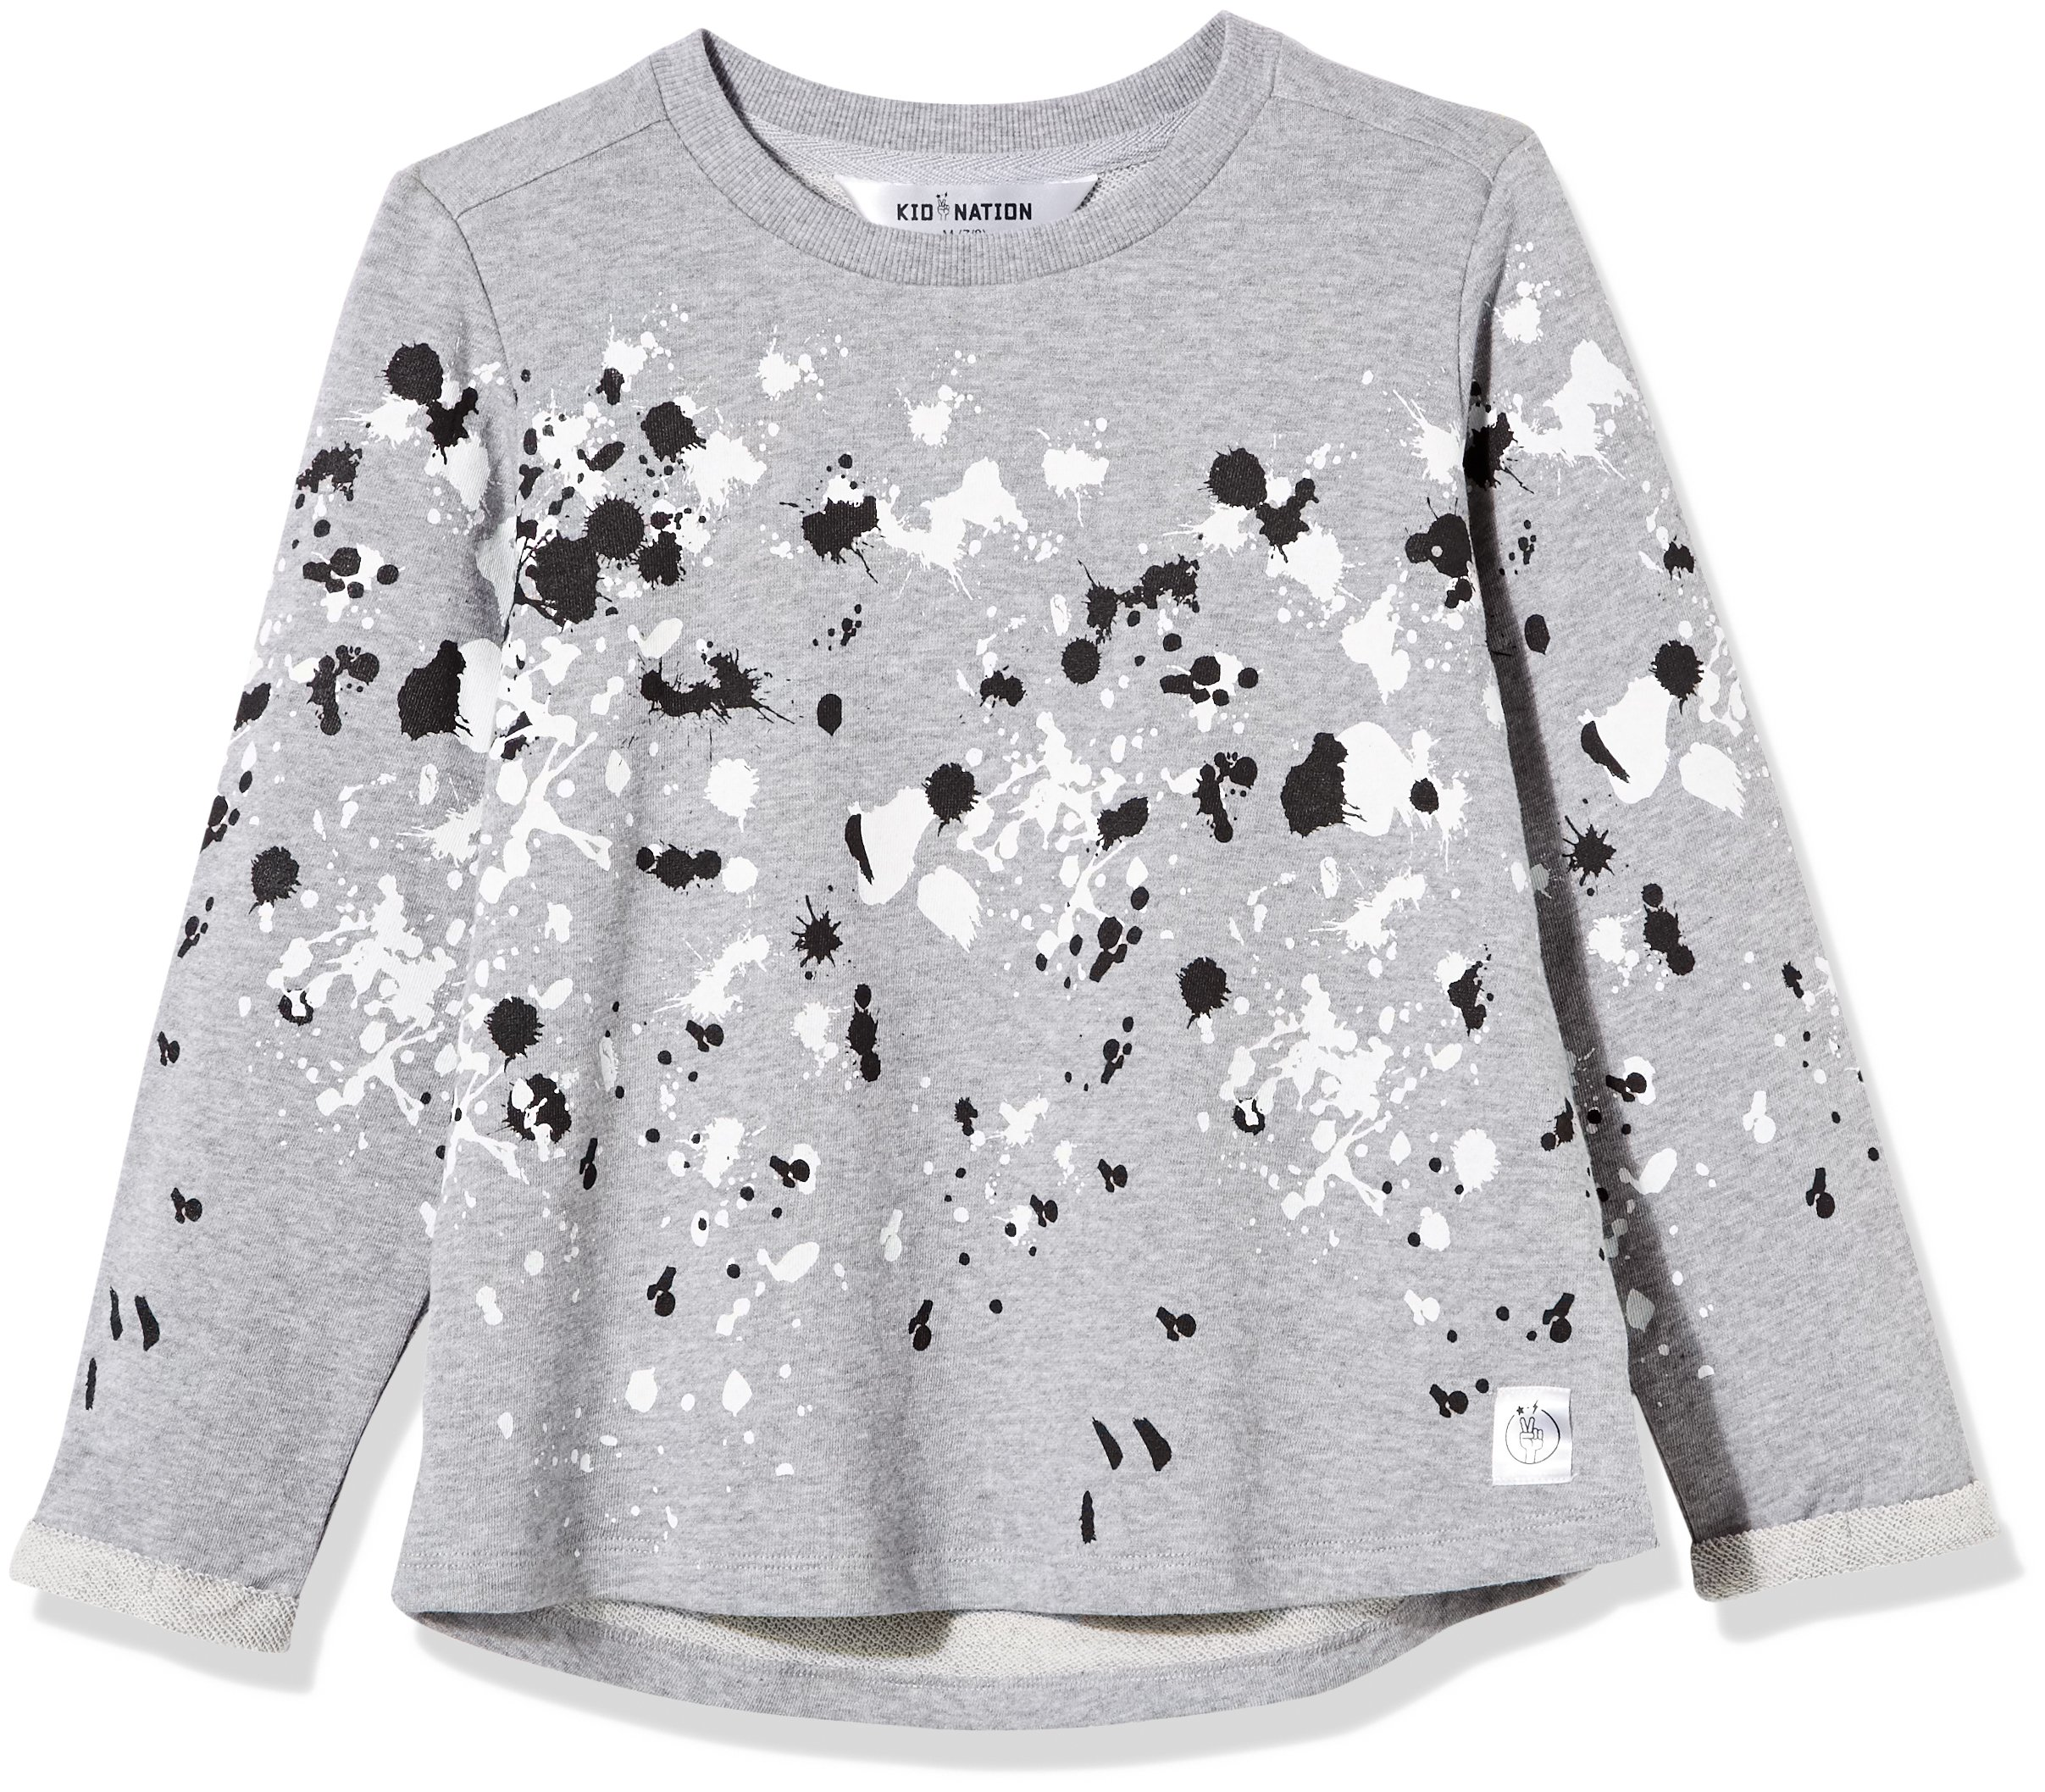 Kid Nation Girls' French Terry Rolled-Cuff Printed Oversized T-Shirt X-Small Gray Heather